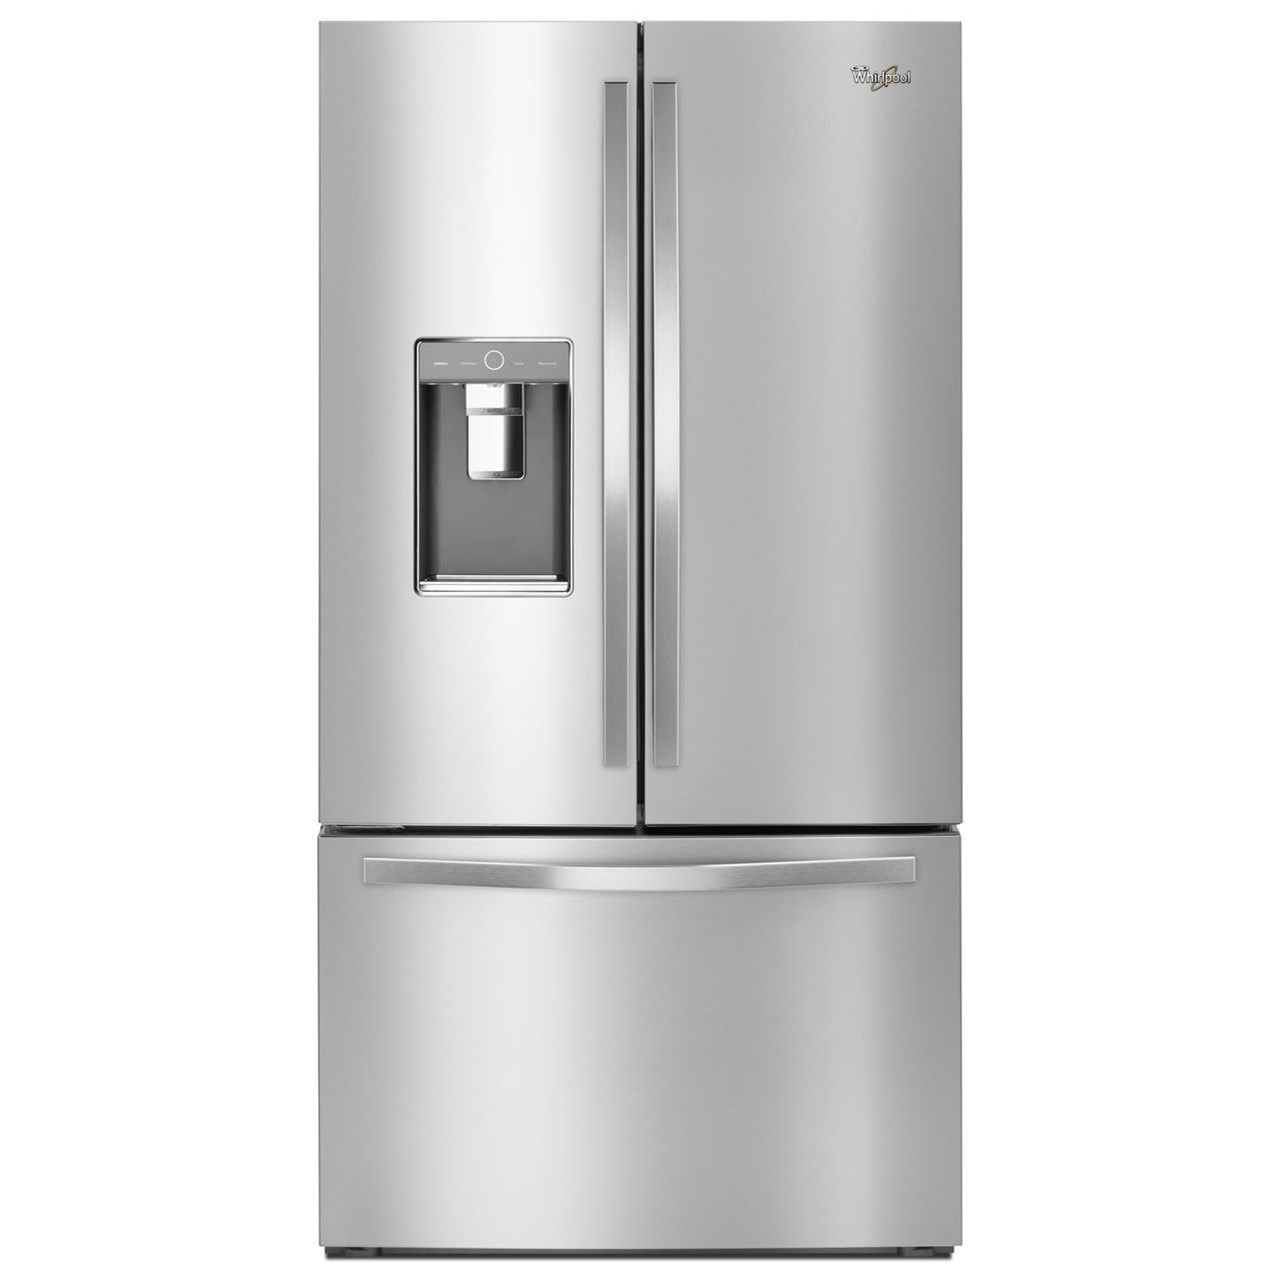 Superieur Whirlpool French Door Refrigerators36 Inch Wide French Door Refrigerator ...